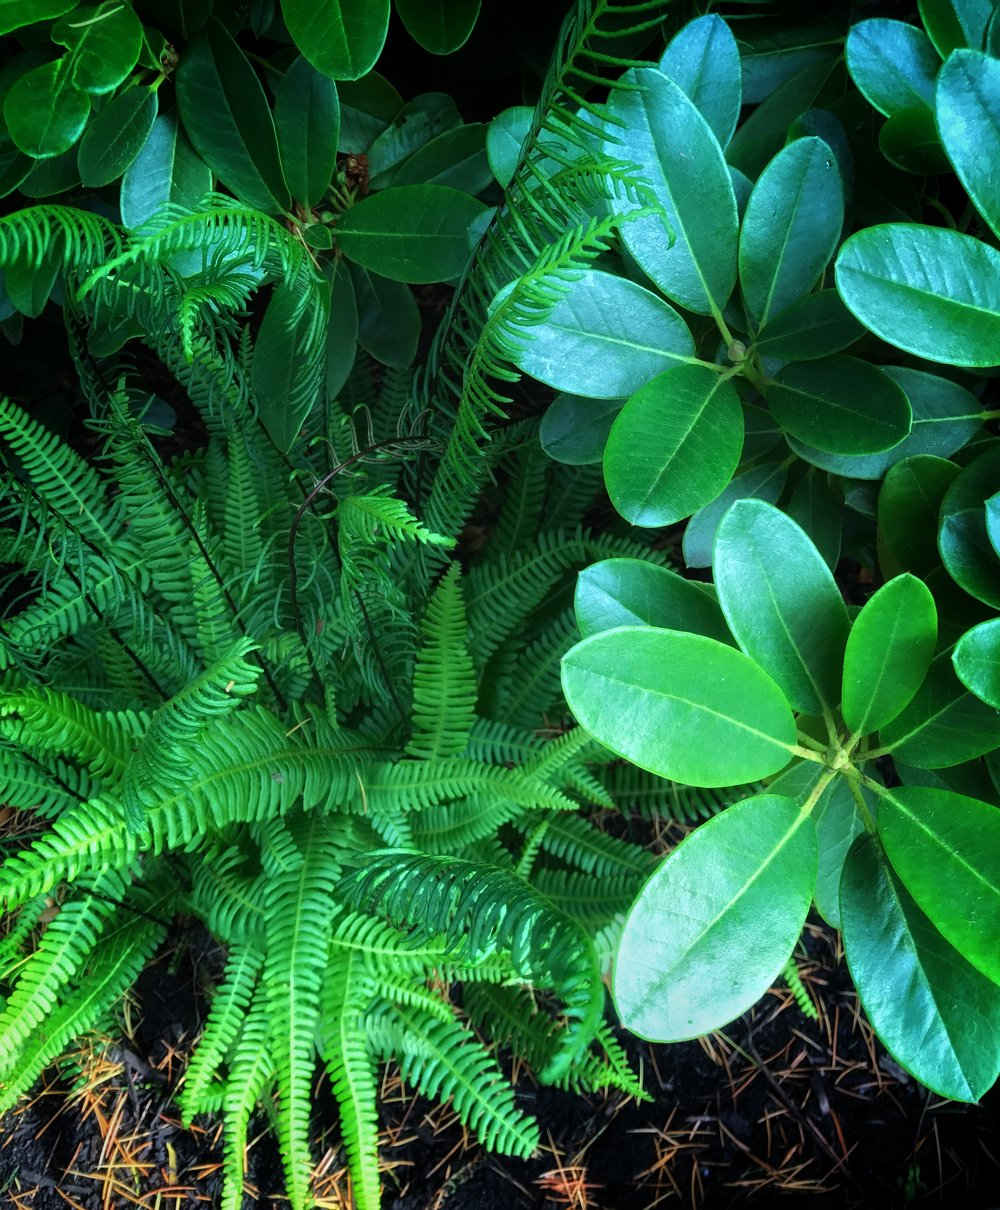 Foliage combo: round-leaved rhody and native deer fern.